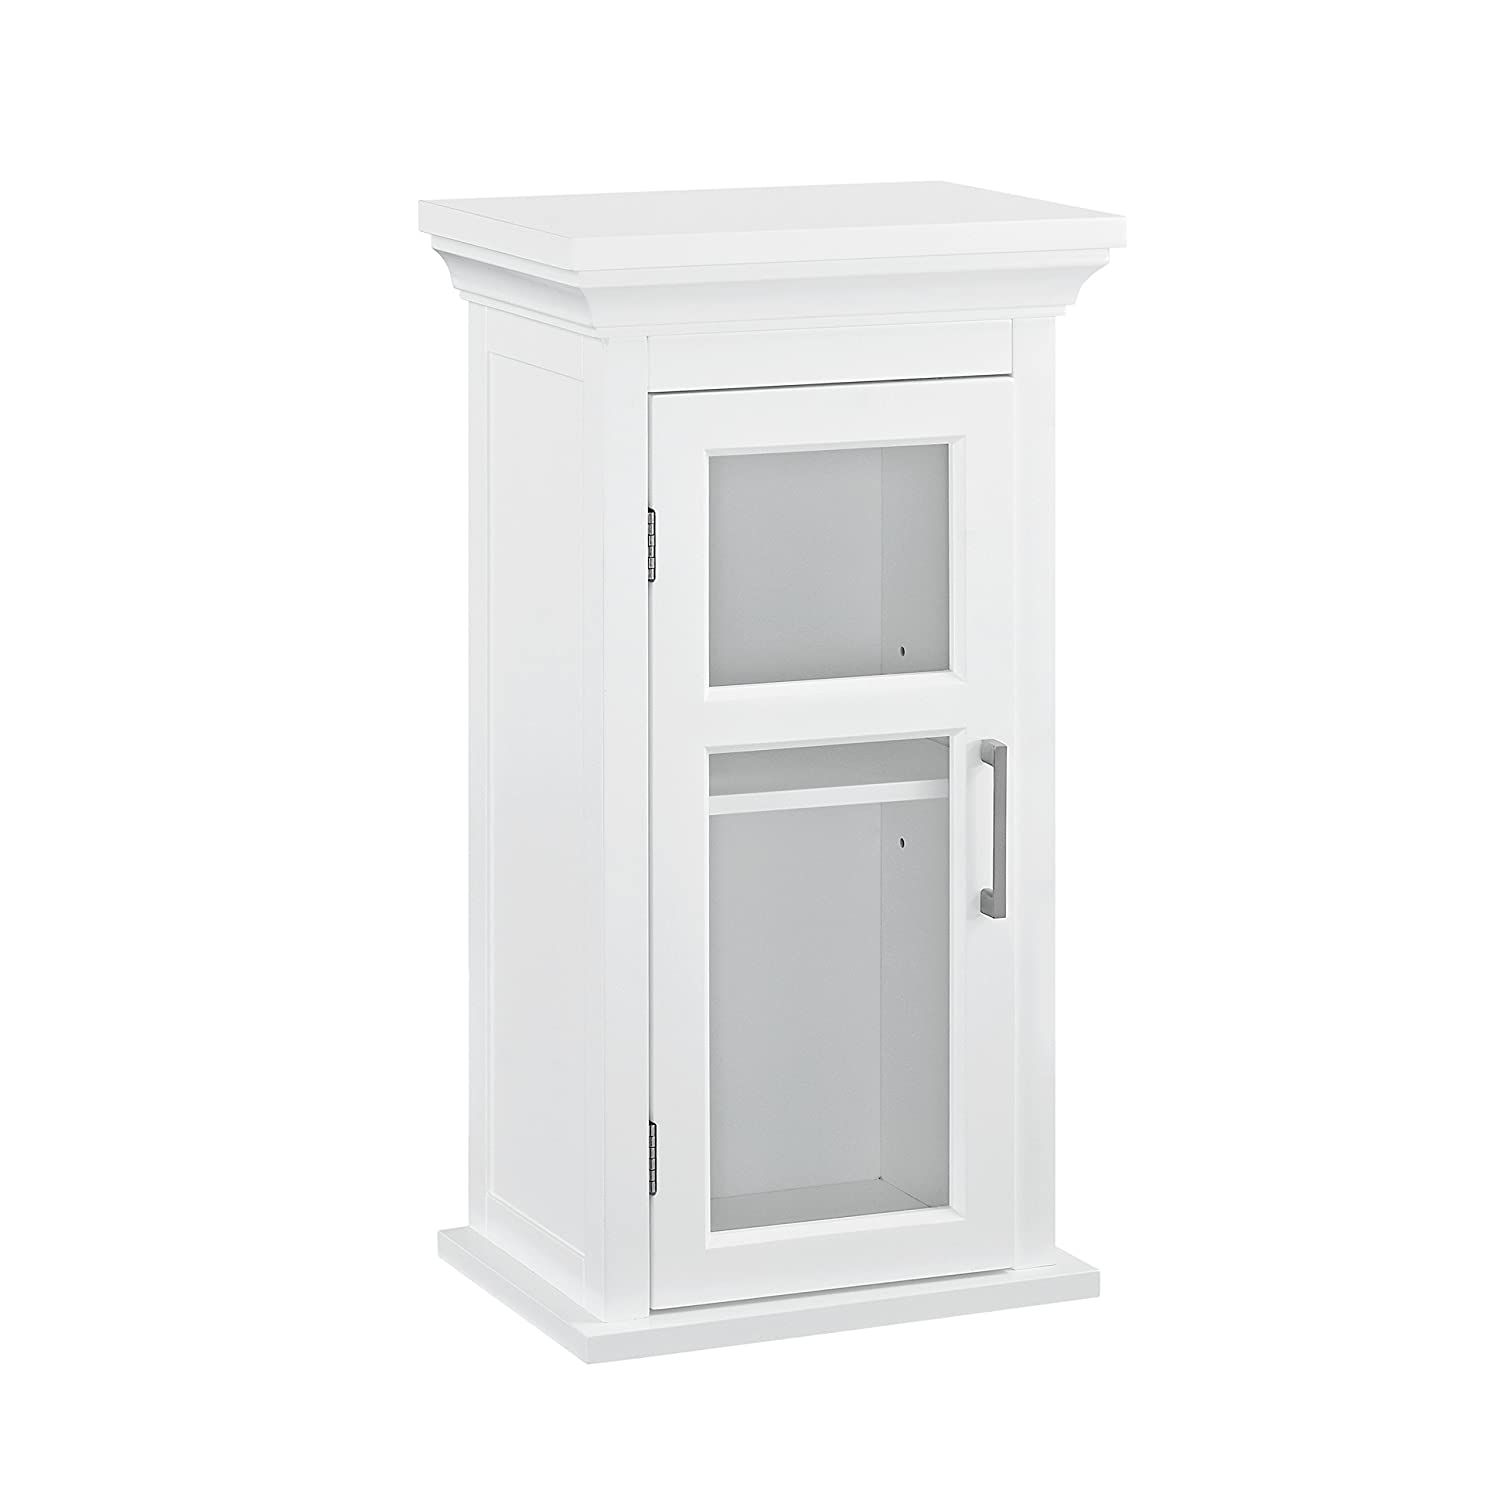 Simpli Home Avington Single Door Wall Cabinet, White CCT Global Sourcing AXCBC-005-WH